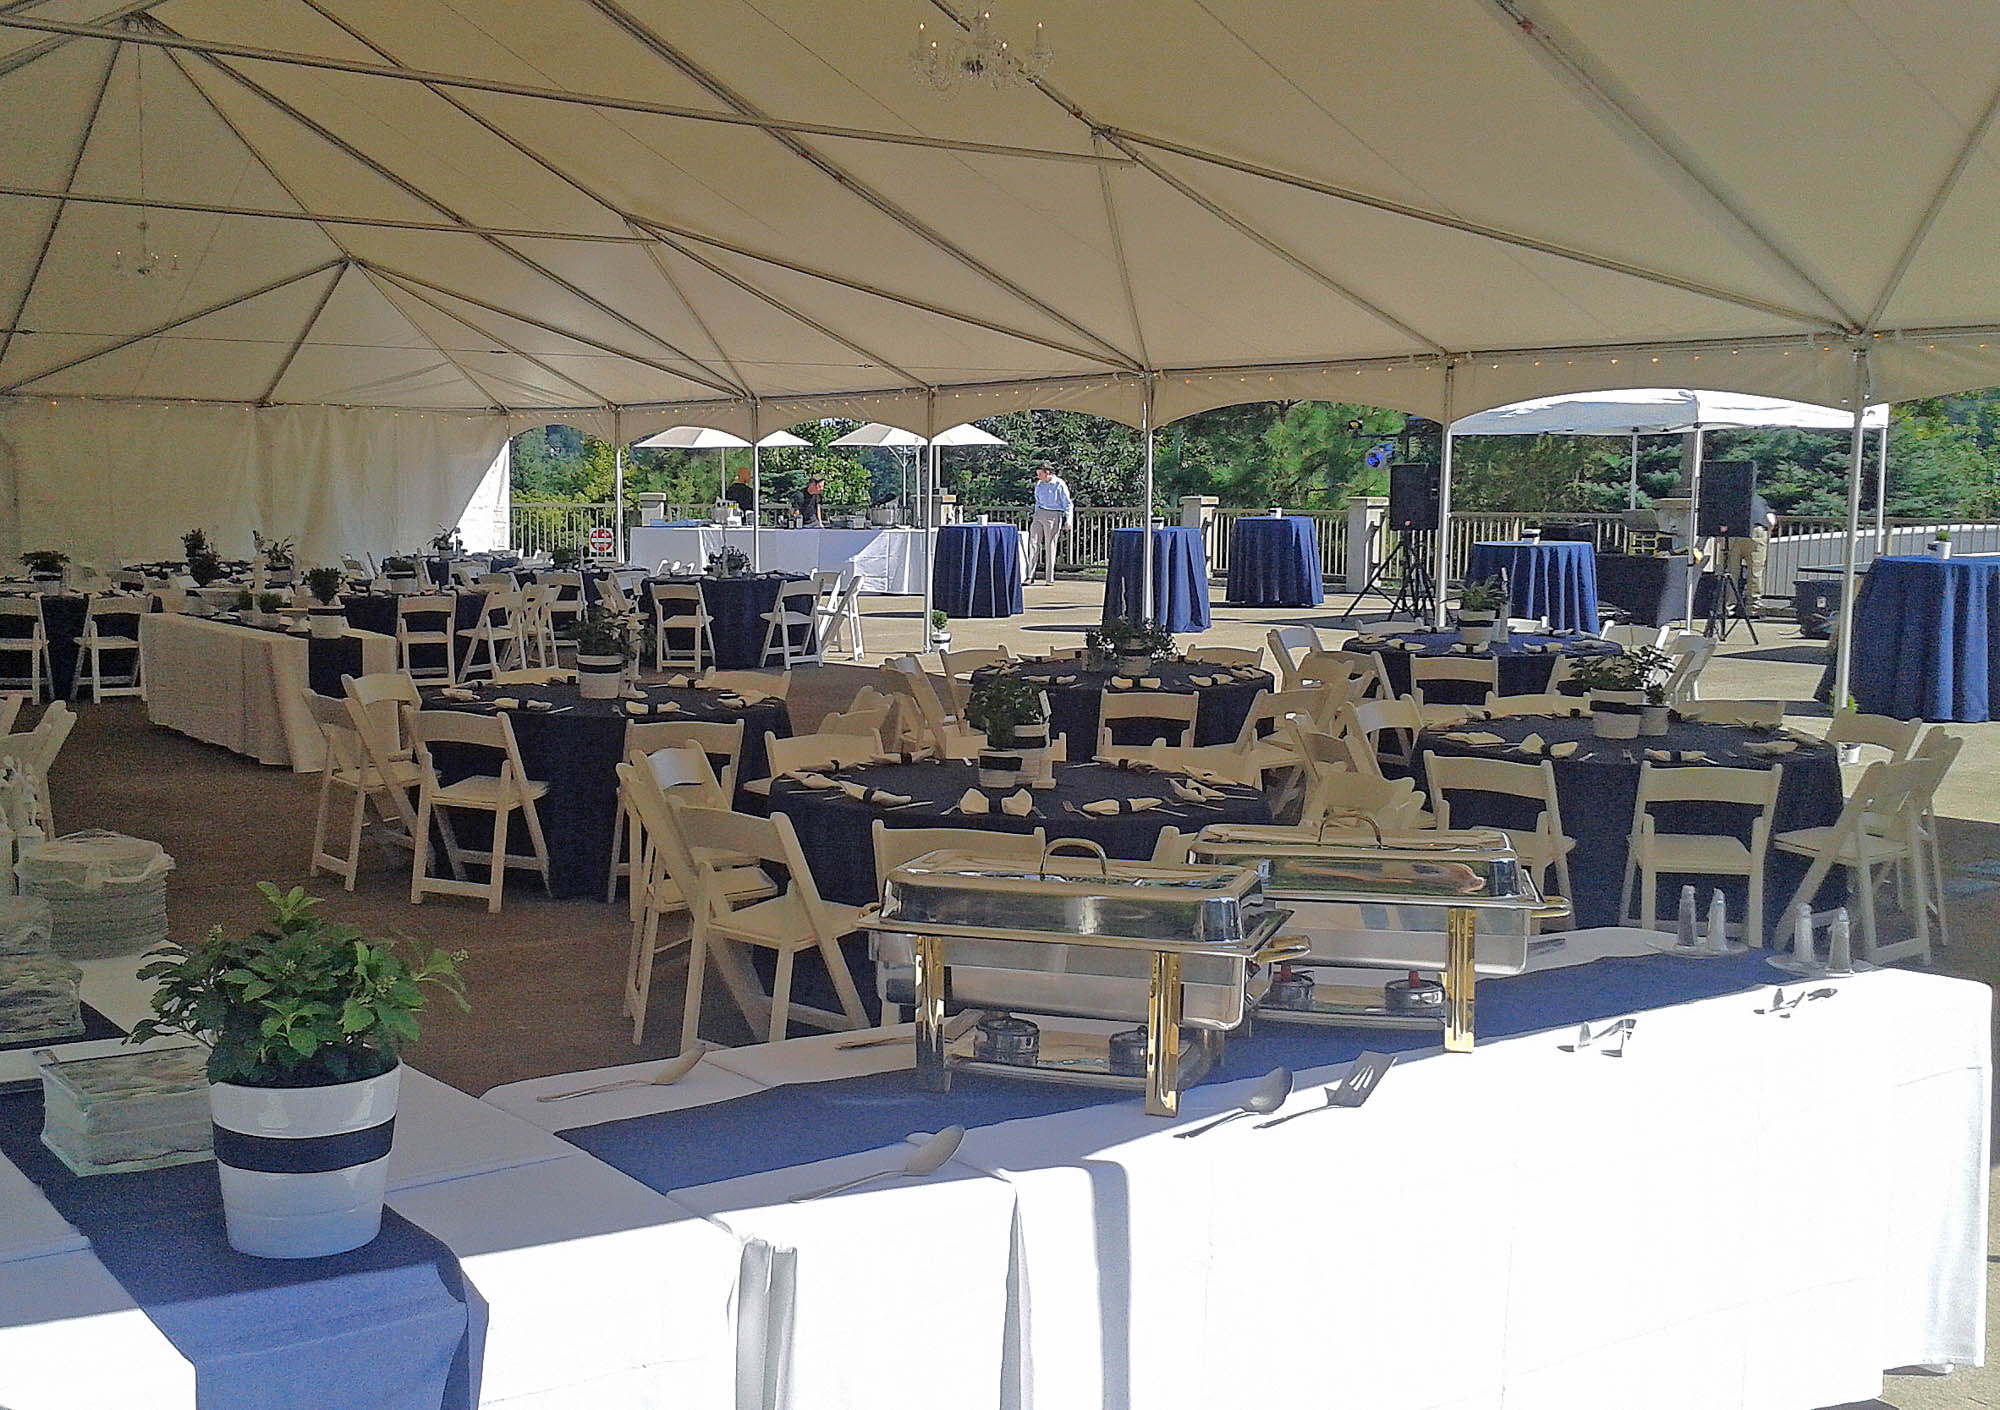 Event space set up for a private event with decorated tables